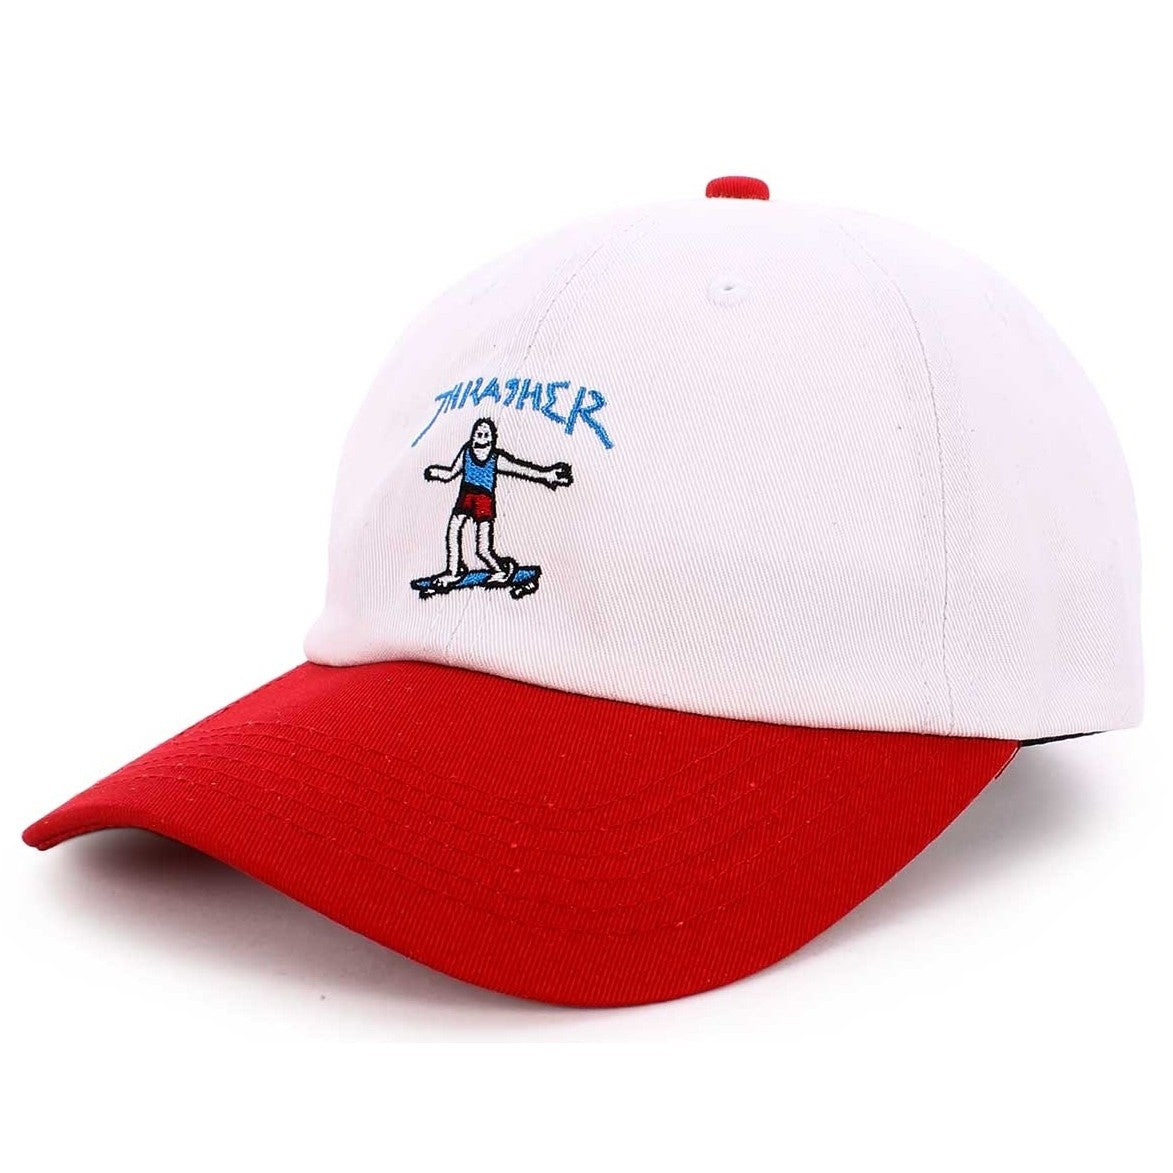 Thrasher Gonz Old Timer Hat White/Red